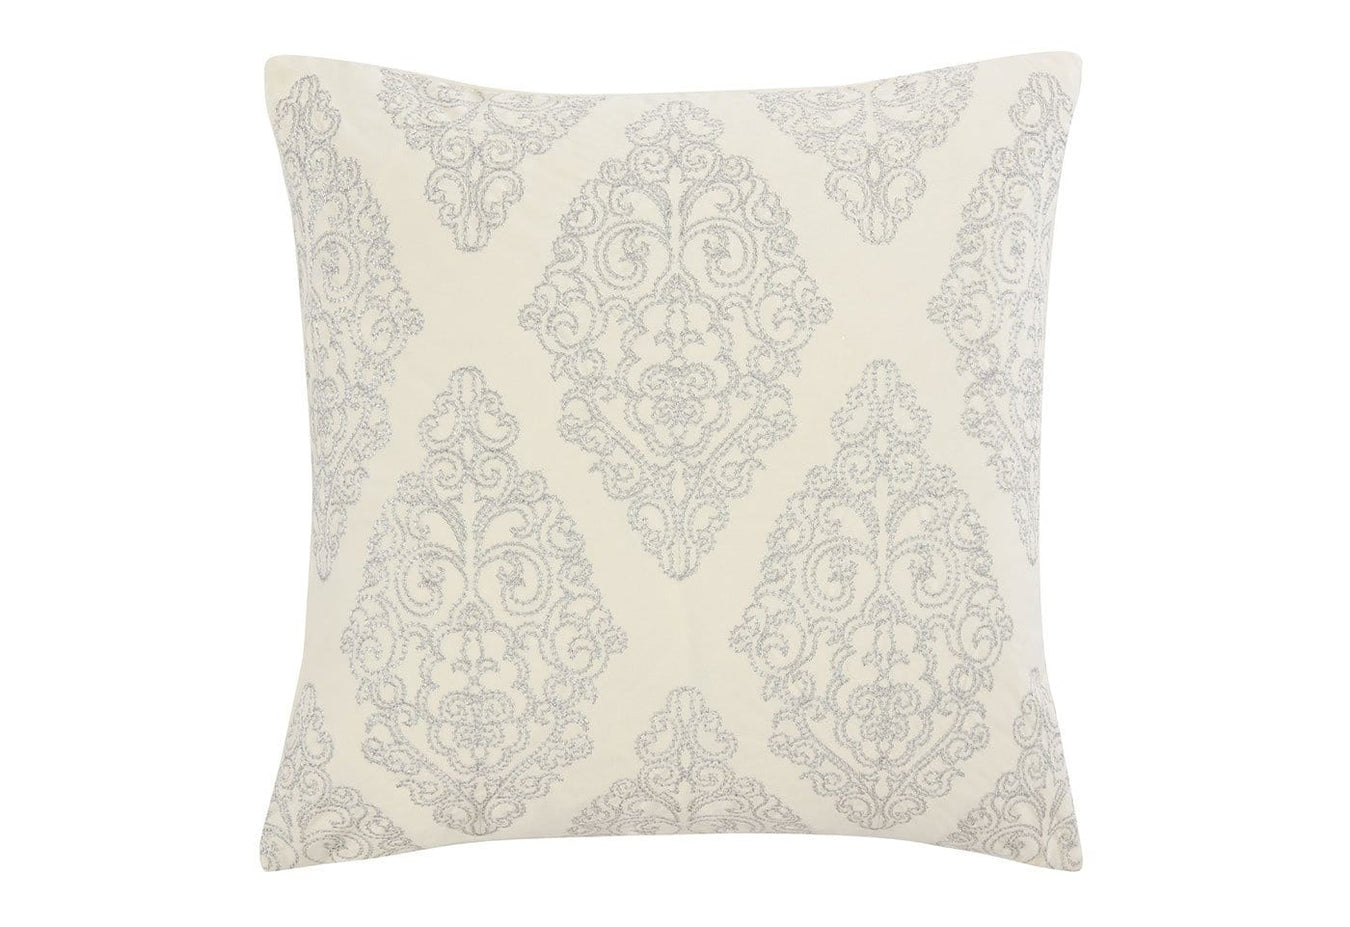 Waverly 20 Inch Square Decorative Pillow